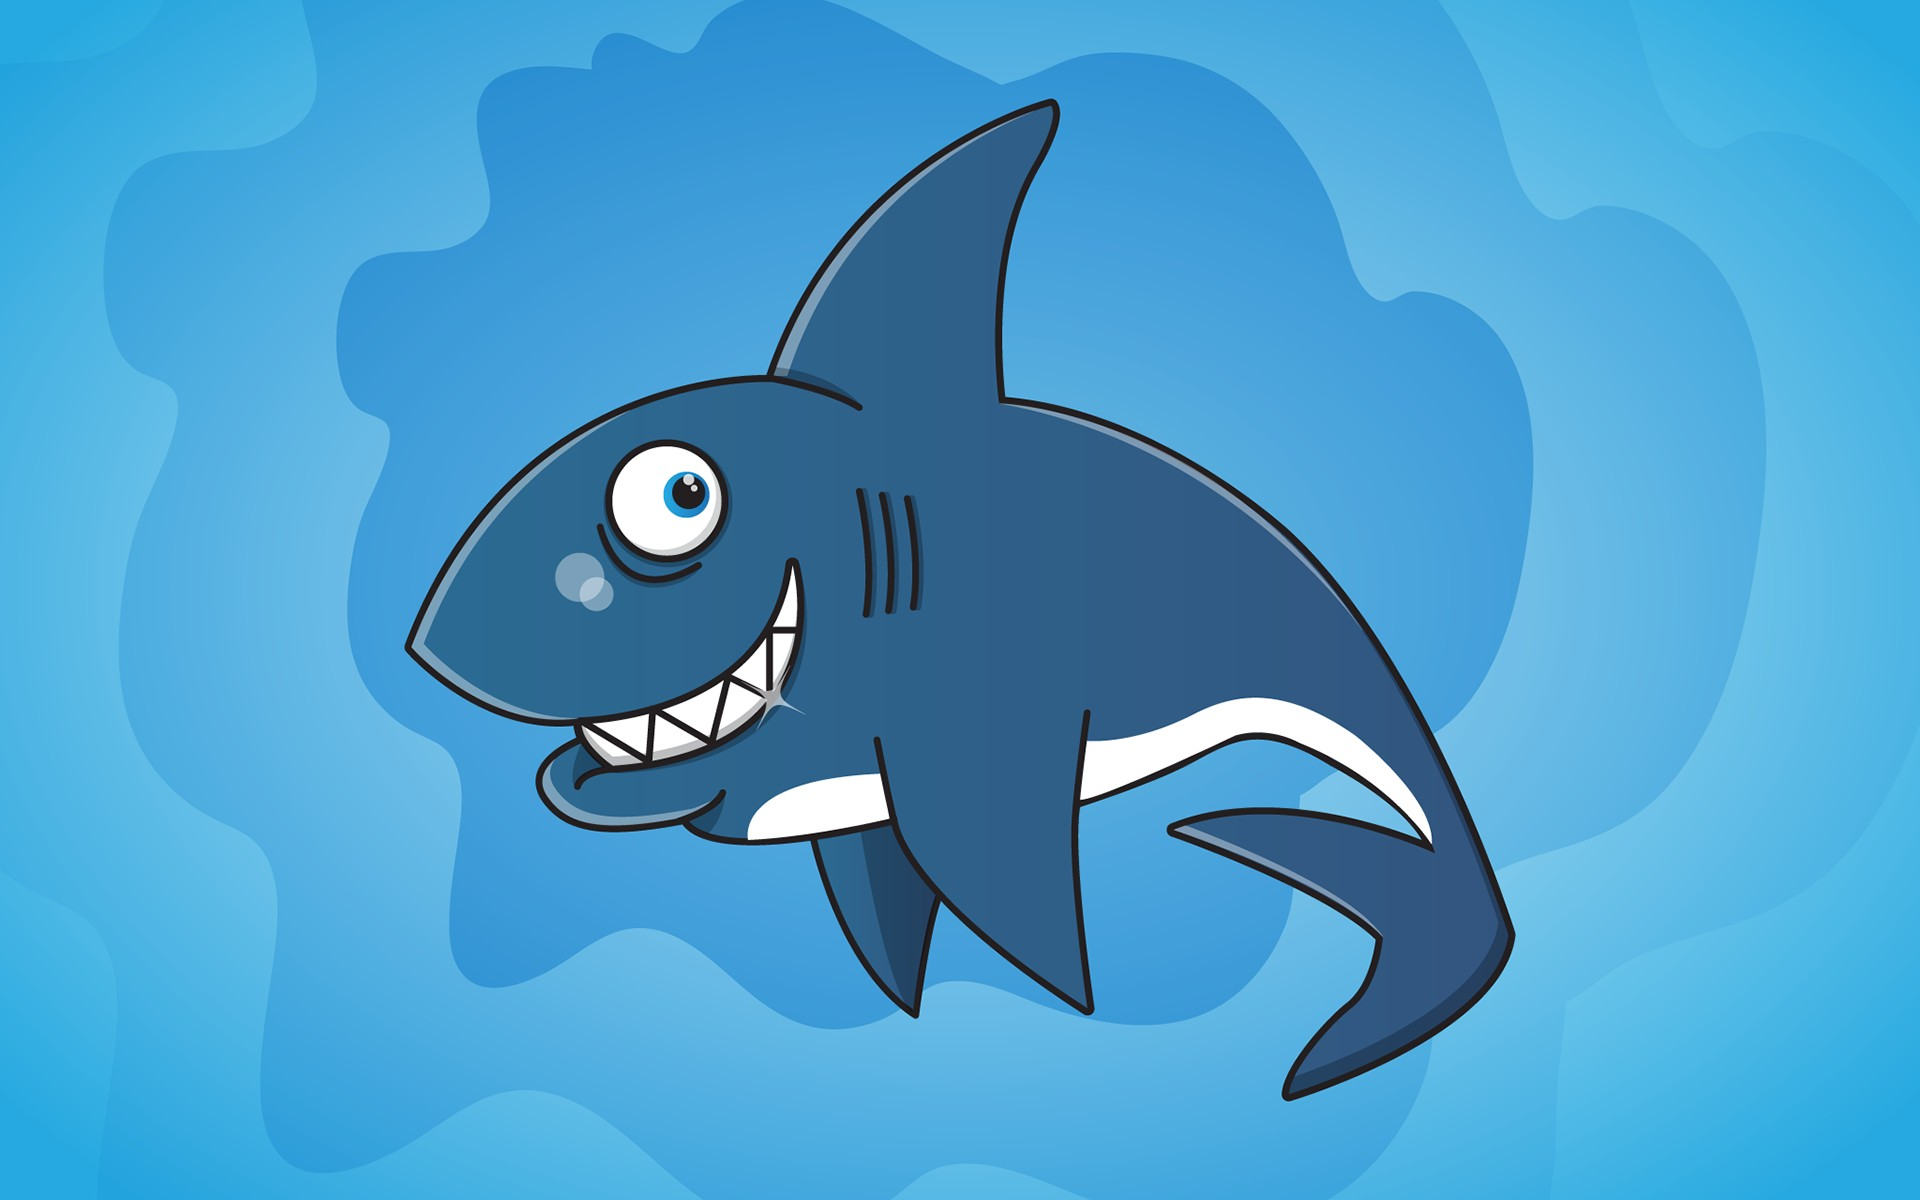 Smiling Shark - Android wallpapers